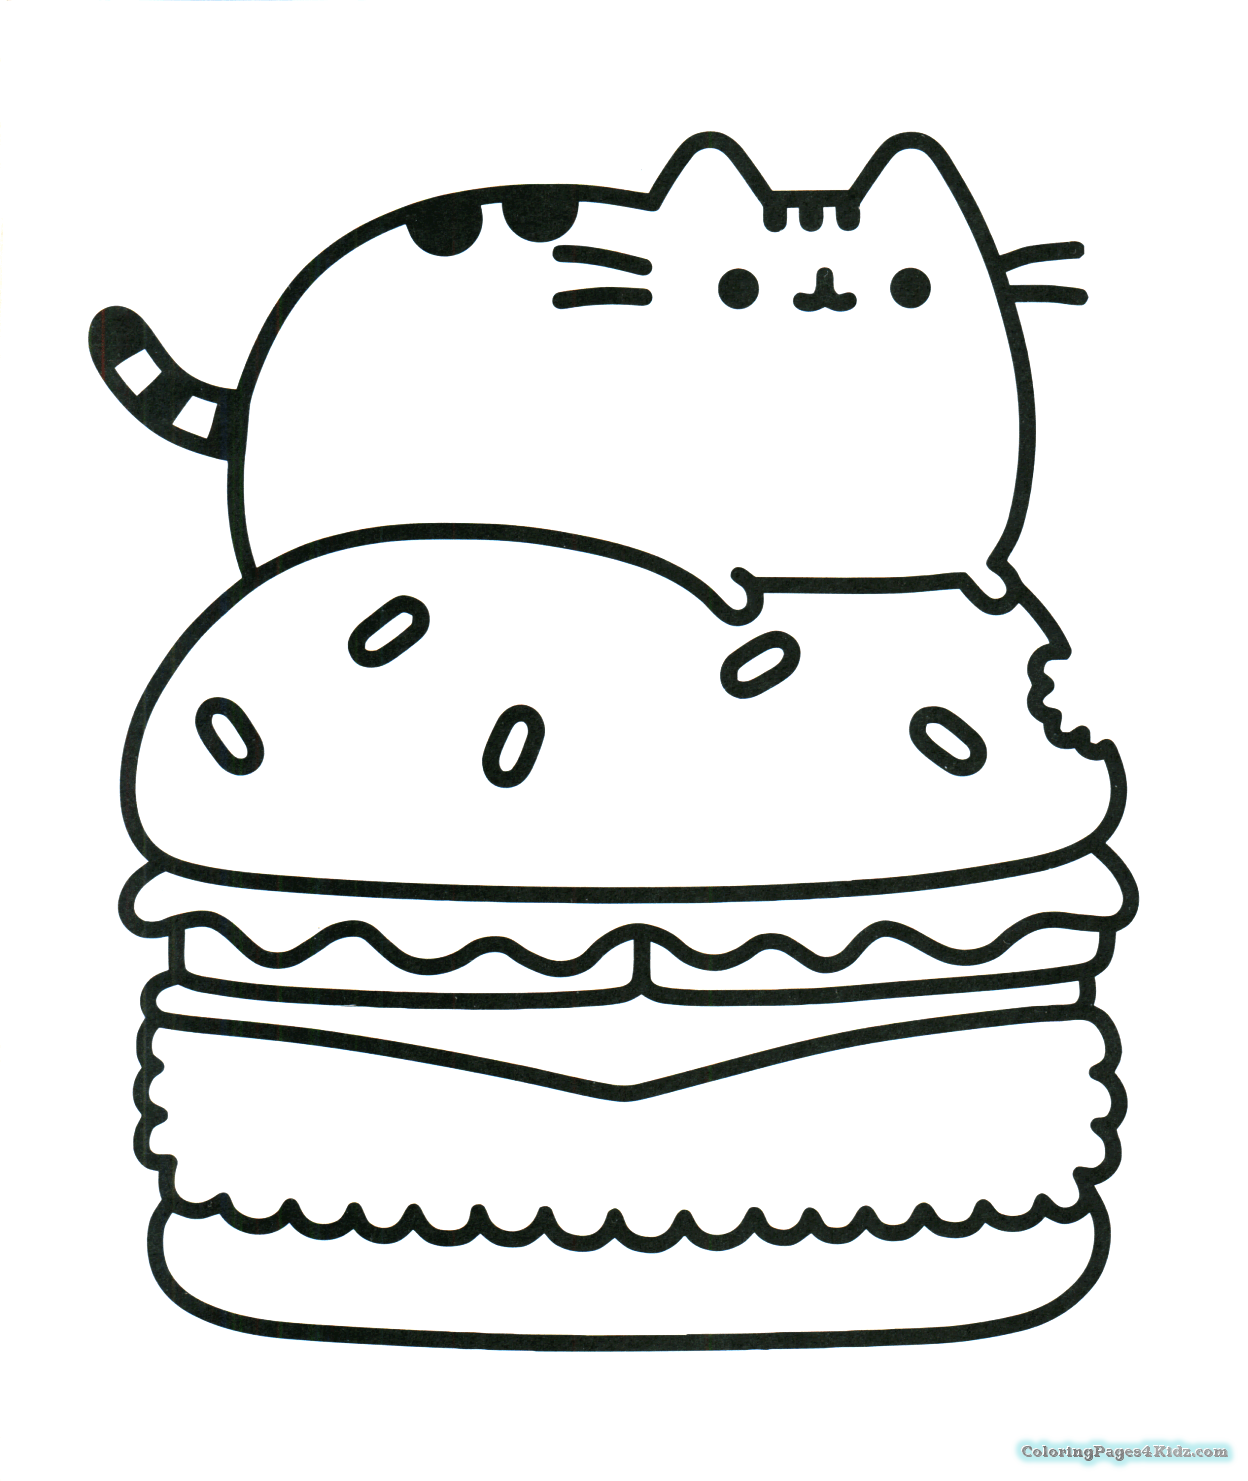 Pusheen Cat On A Hamburger Coloring Pages Cartoon Coloring Pages Unicorn Coloring Pages Pusheen Coloring Pages